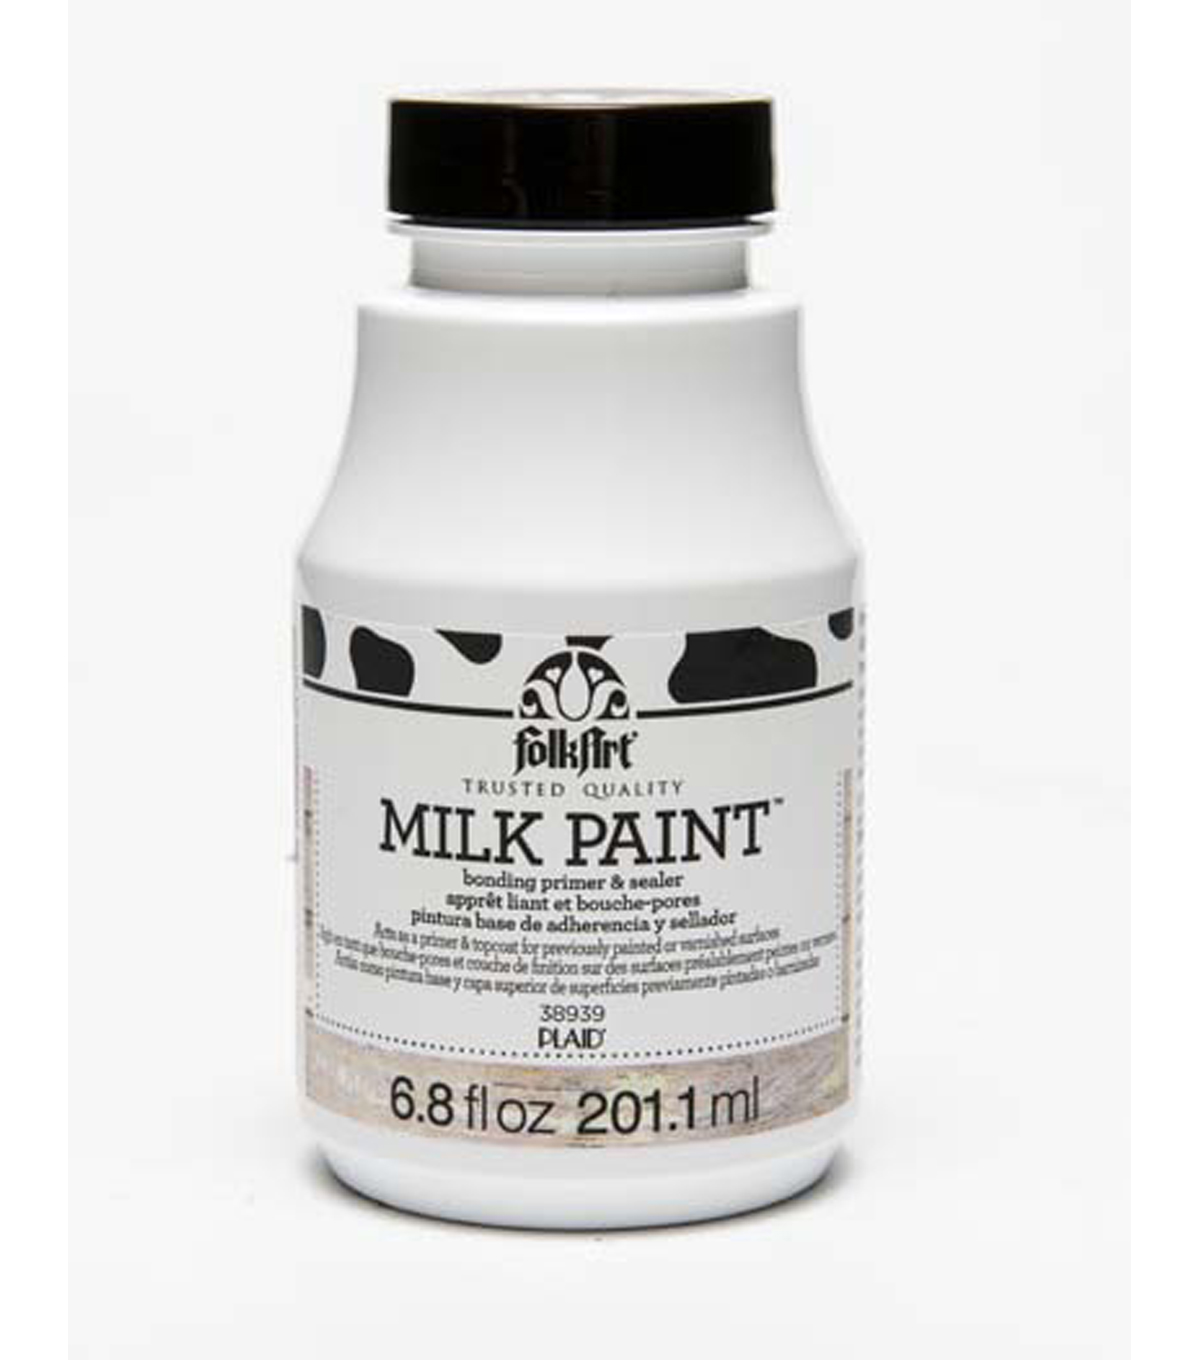 FolkArt Milk Paint 6.8 fl. oz. Bonding Primer & Sealer